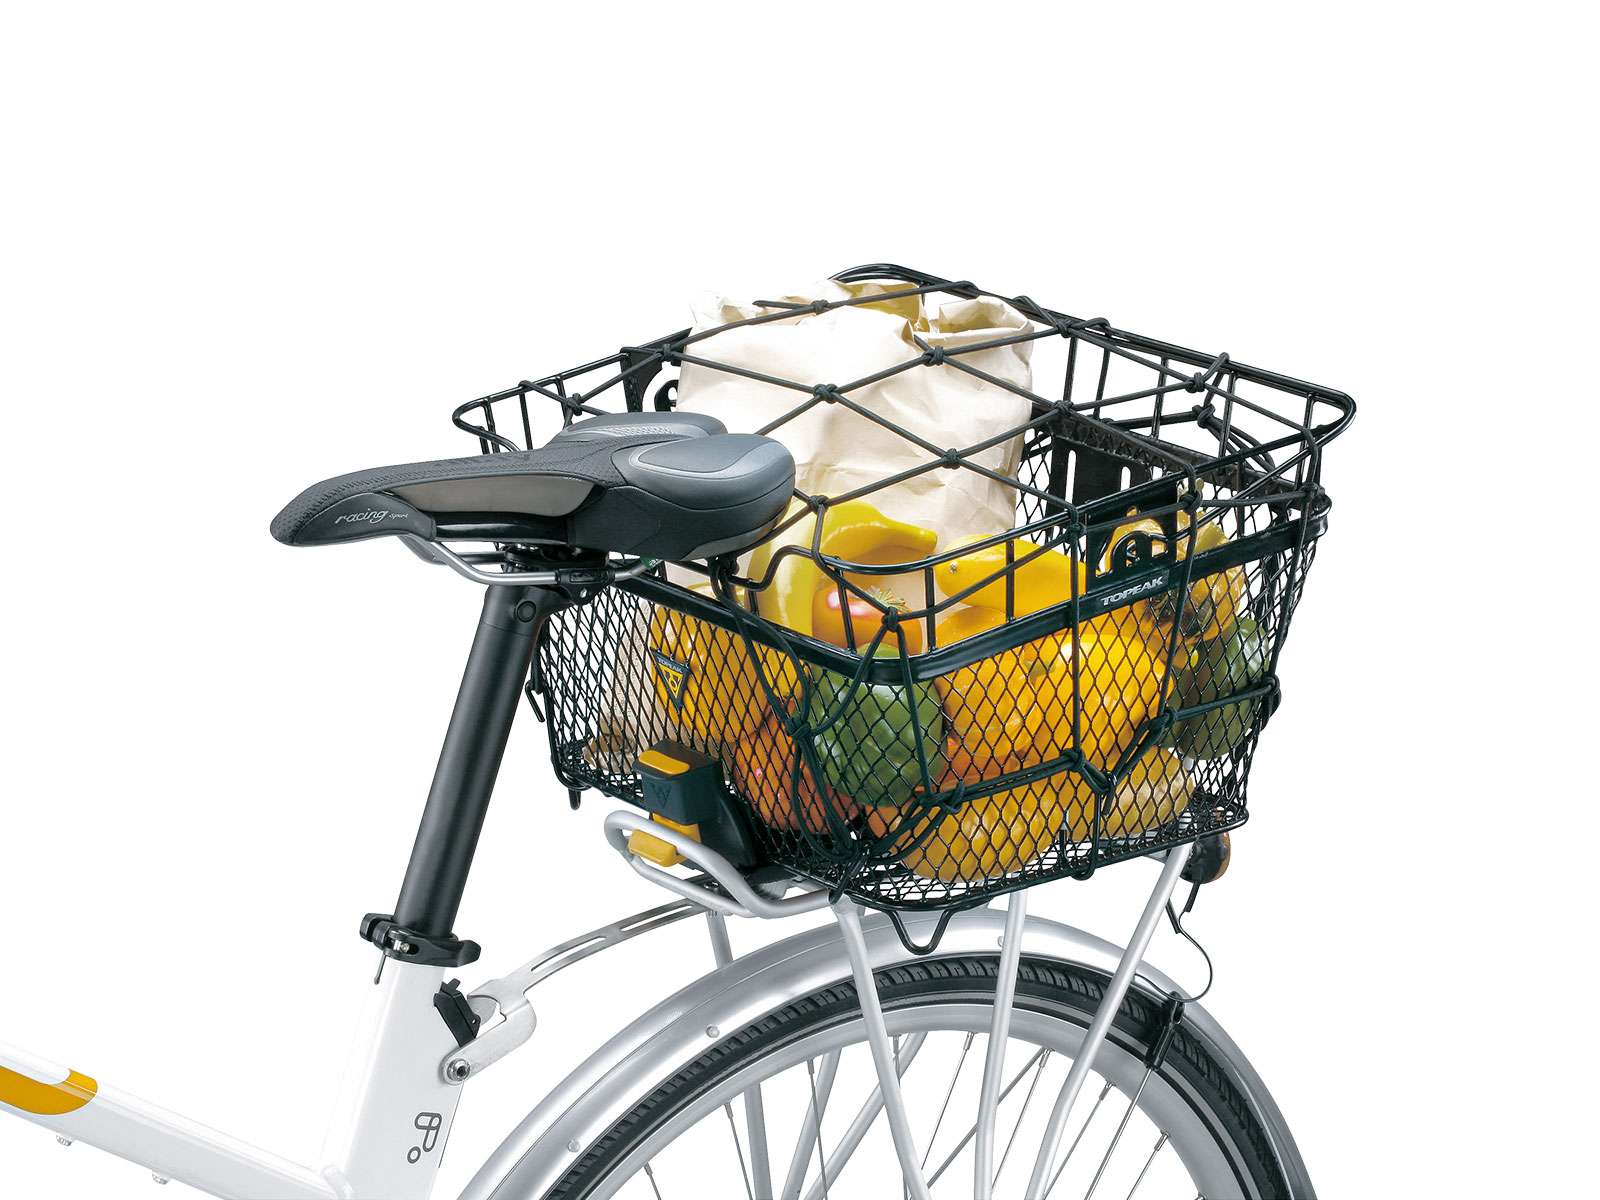 mtx-basket-rear.jpg